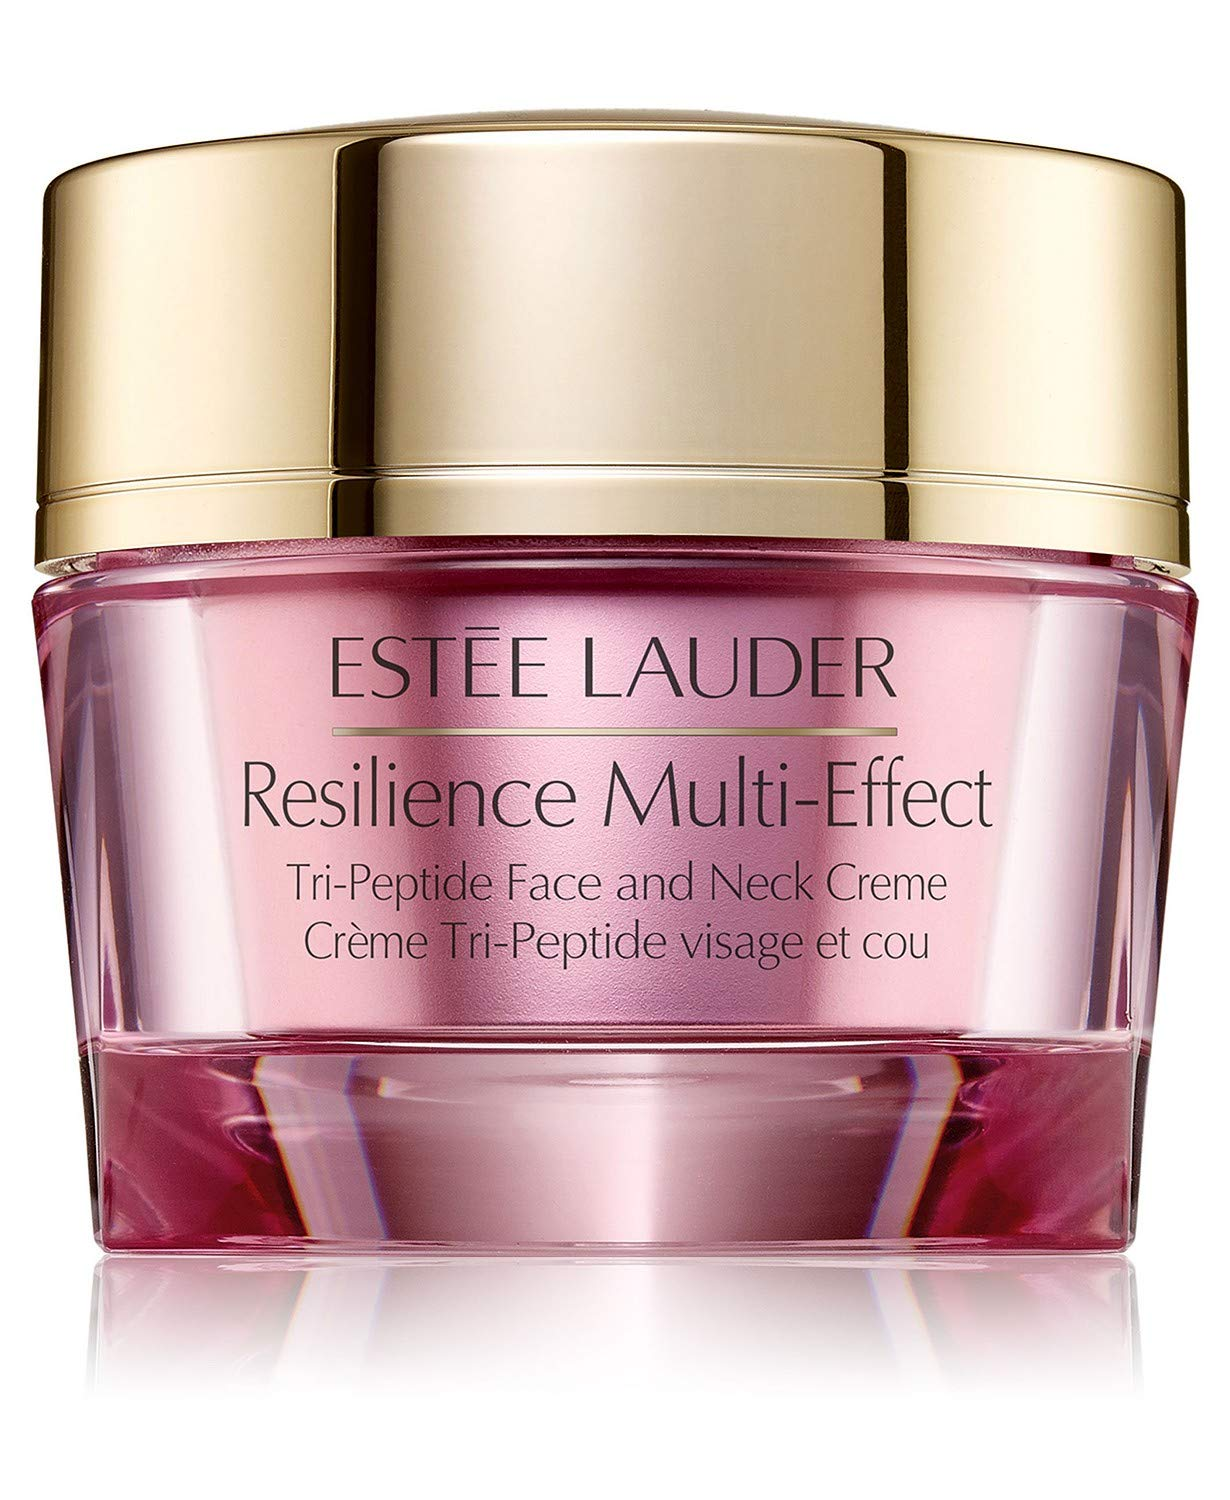 Estee Lauder Resilience Multi Effect Tri Peptide Face and Neck Creme - 1.7 Oz